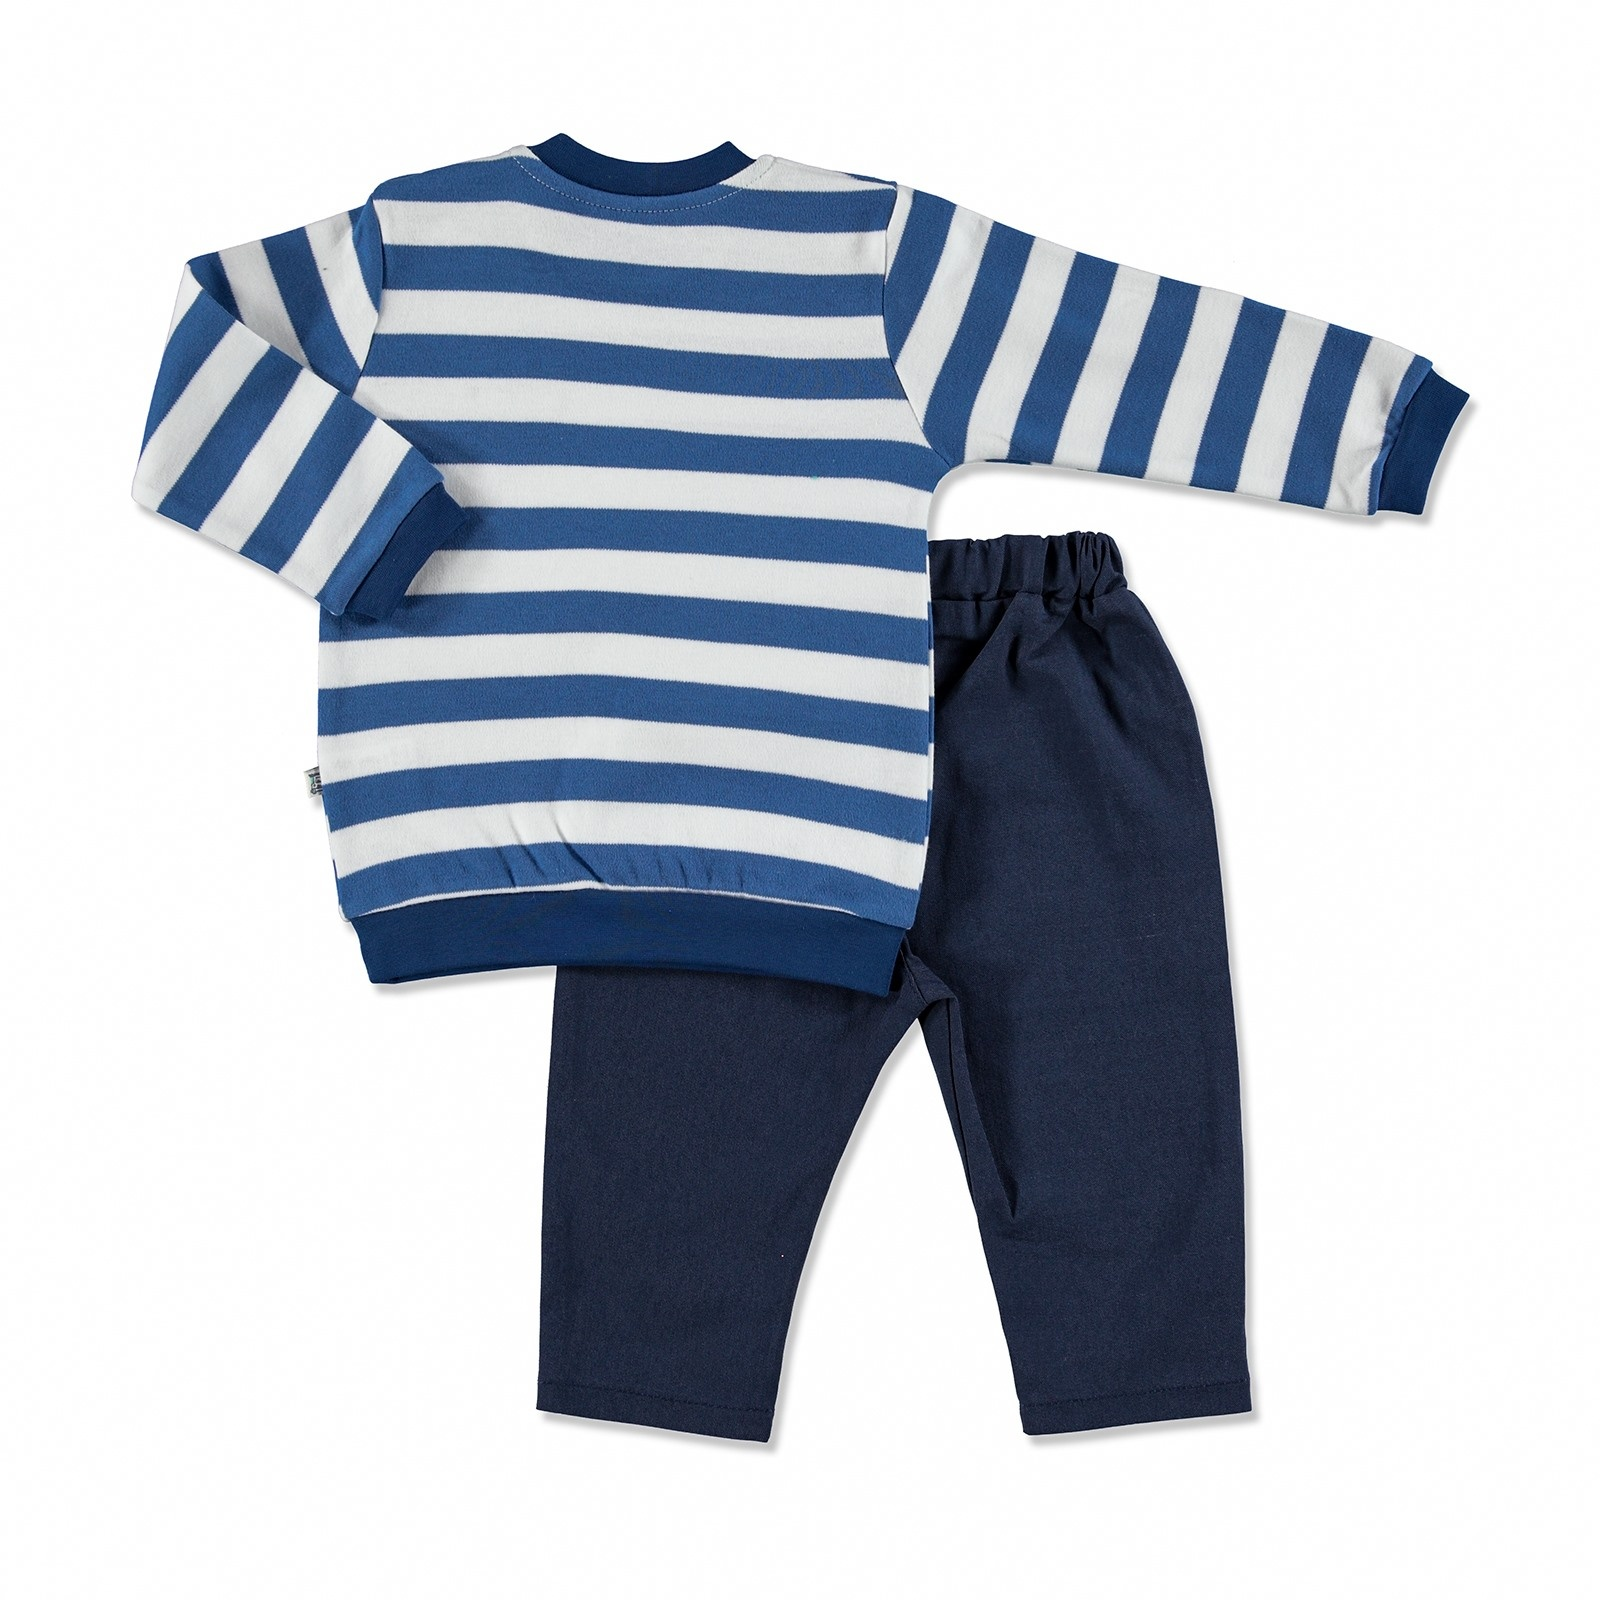 Ebebek Mymio Summer Baby Boy Scoop Interlock Sweatshirt Pant 2 Pcs Set